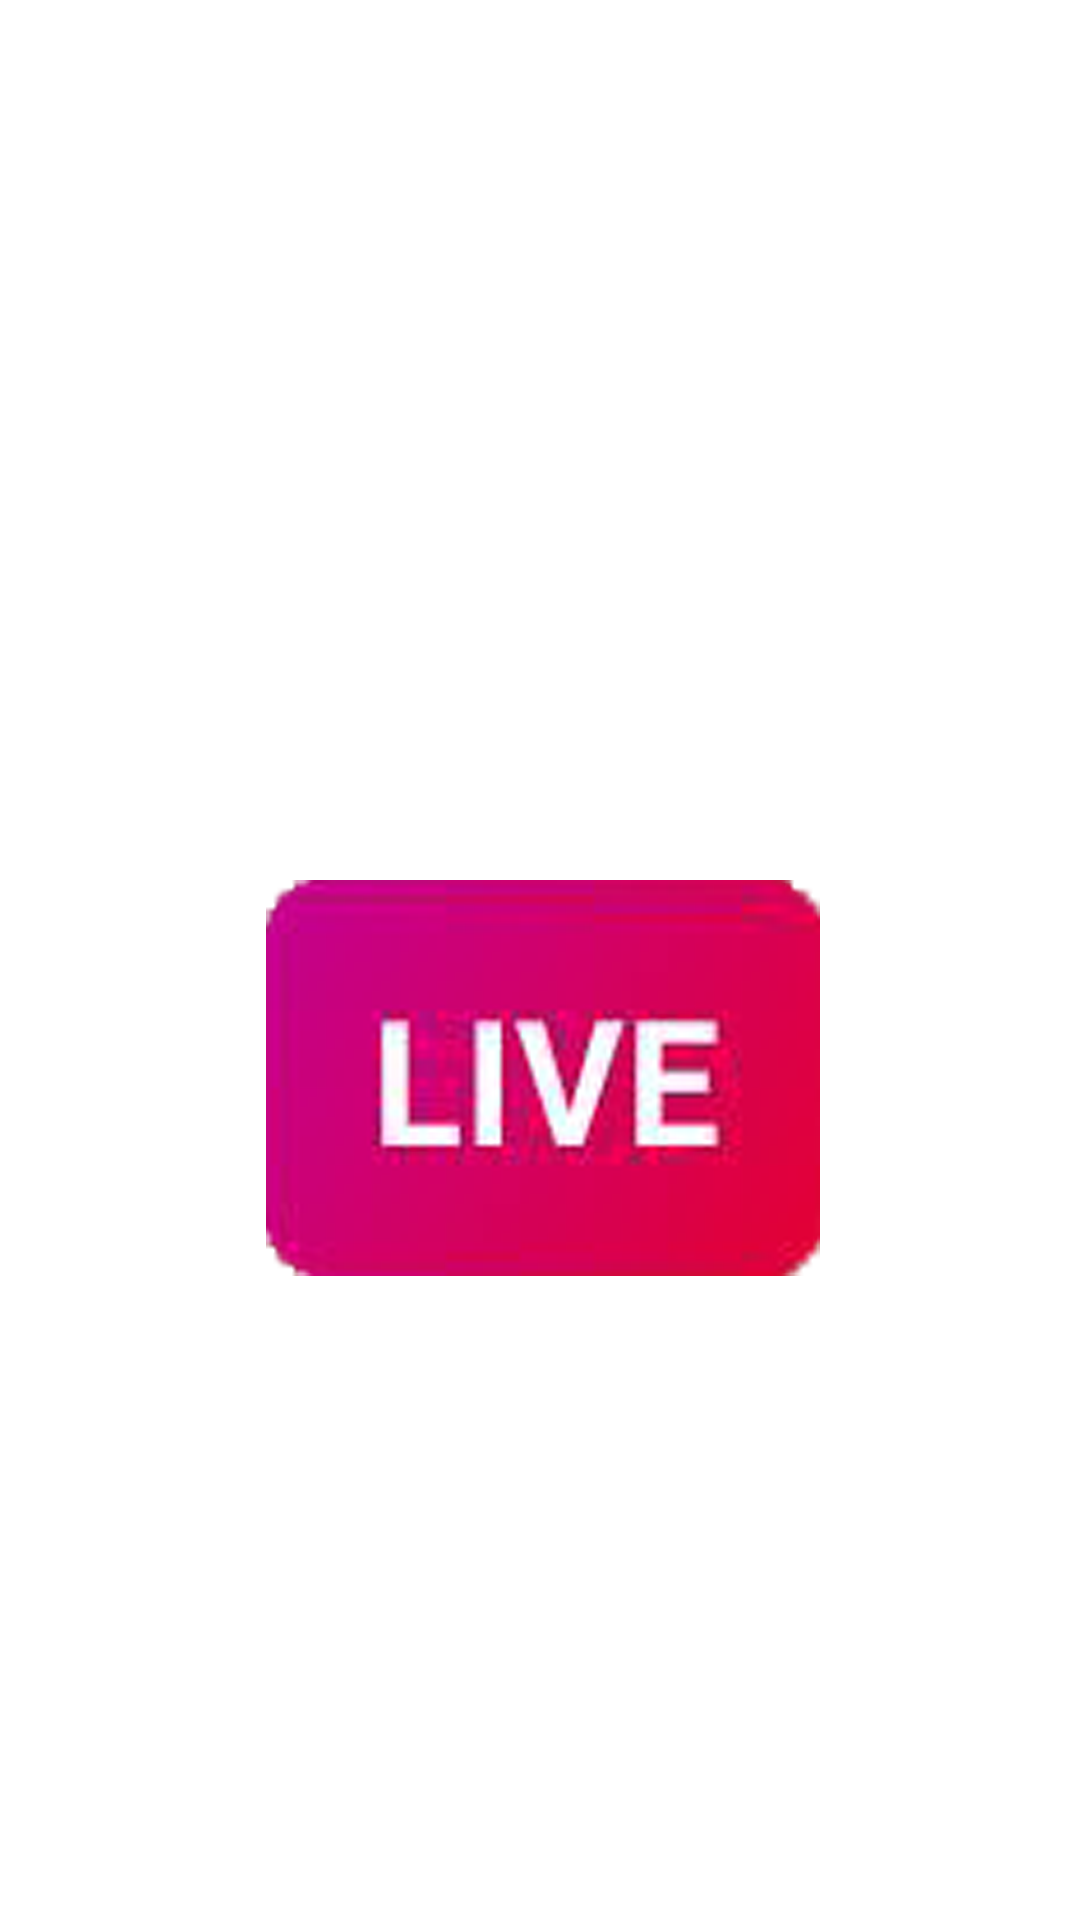 Instagram live png. And viewers logo album